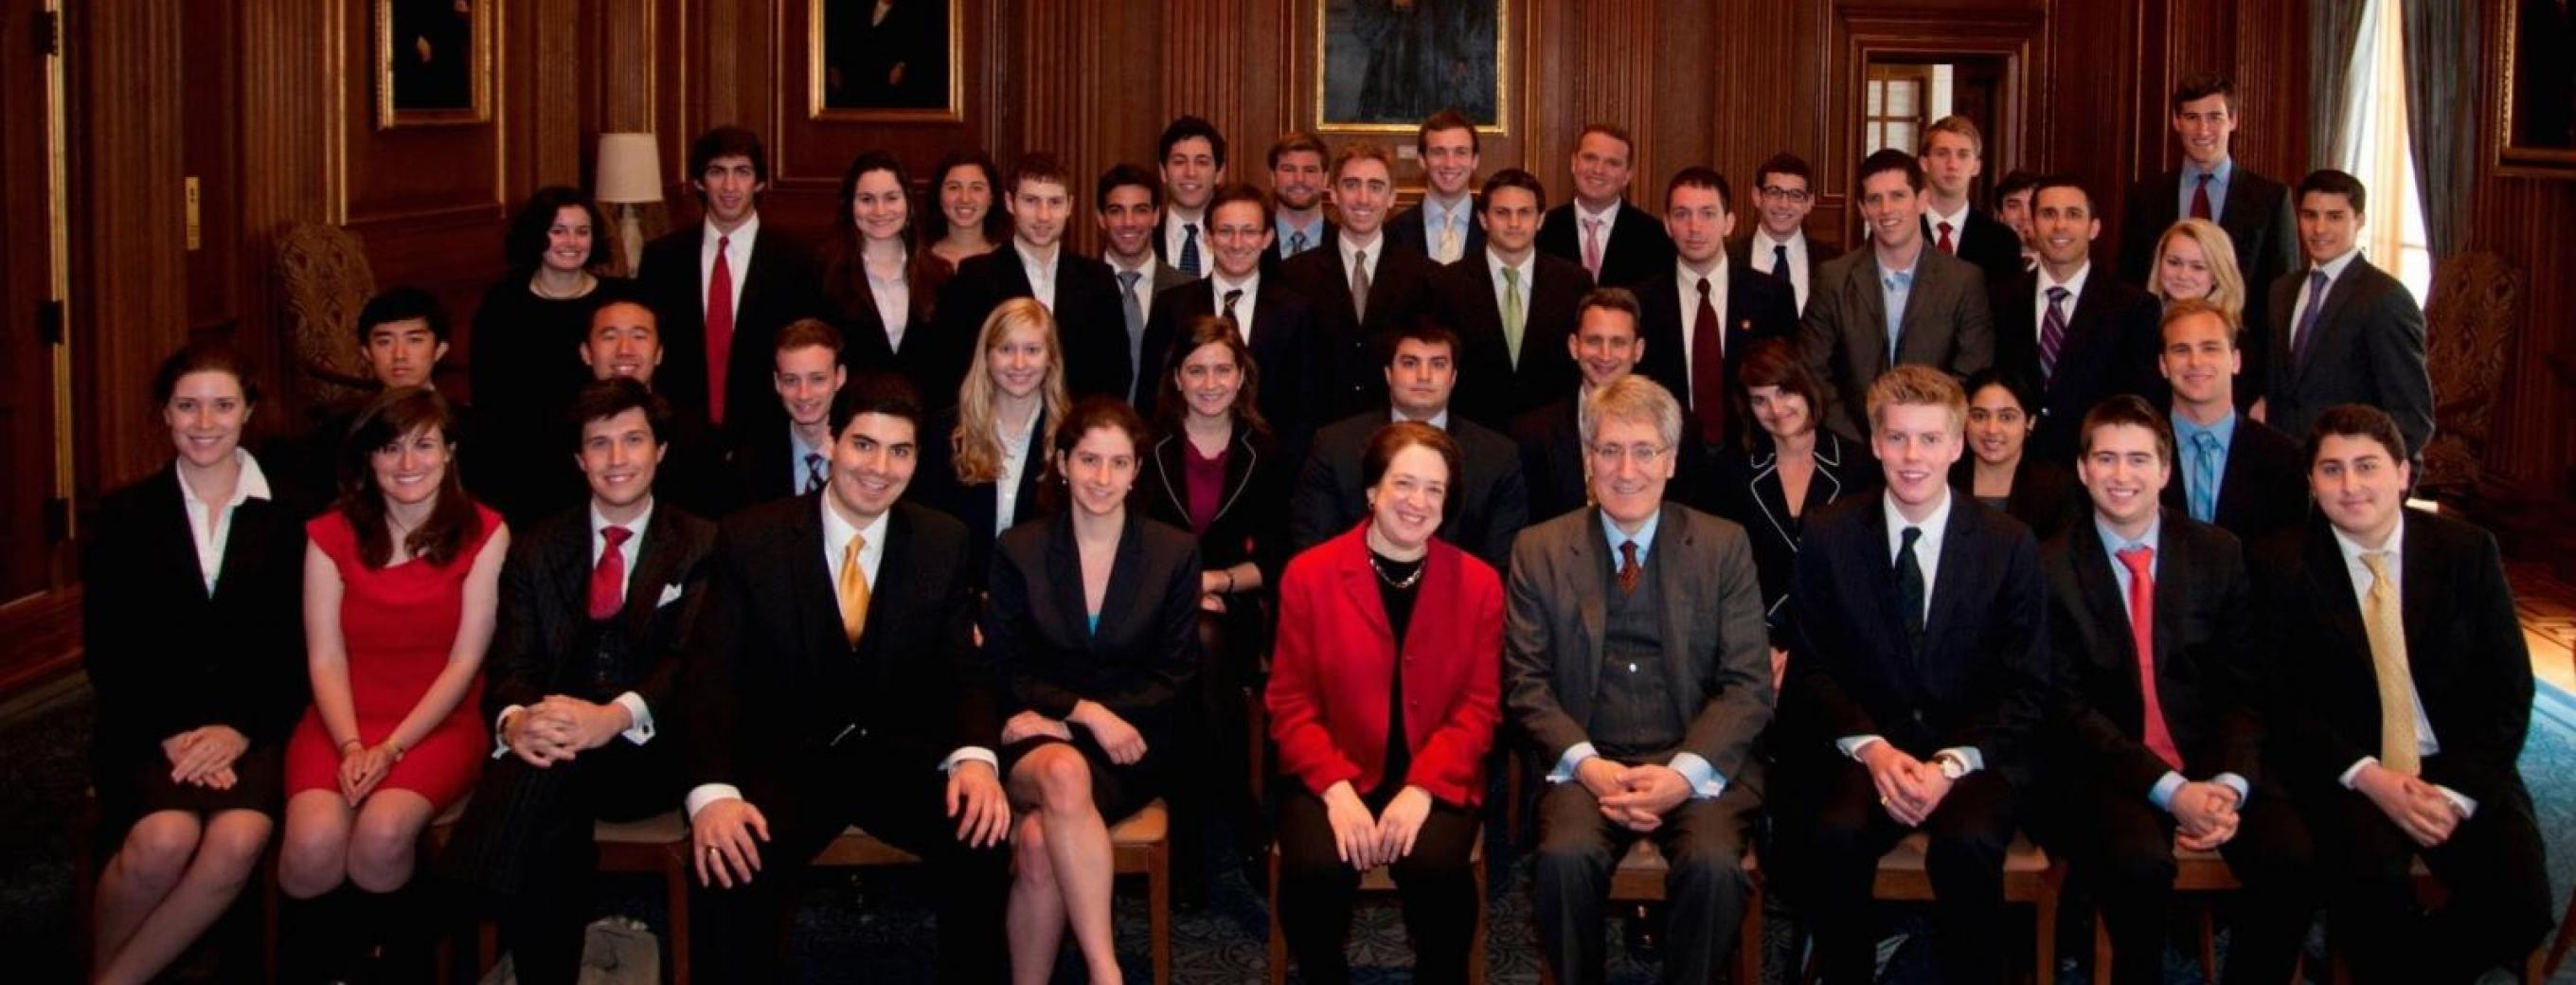 Undergraduate Fellows with Justice Kagan and Professor George